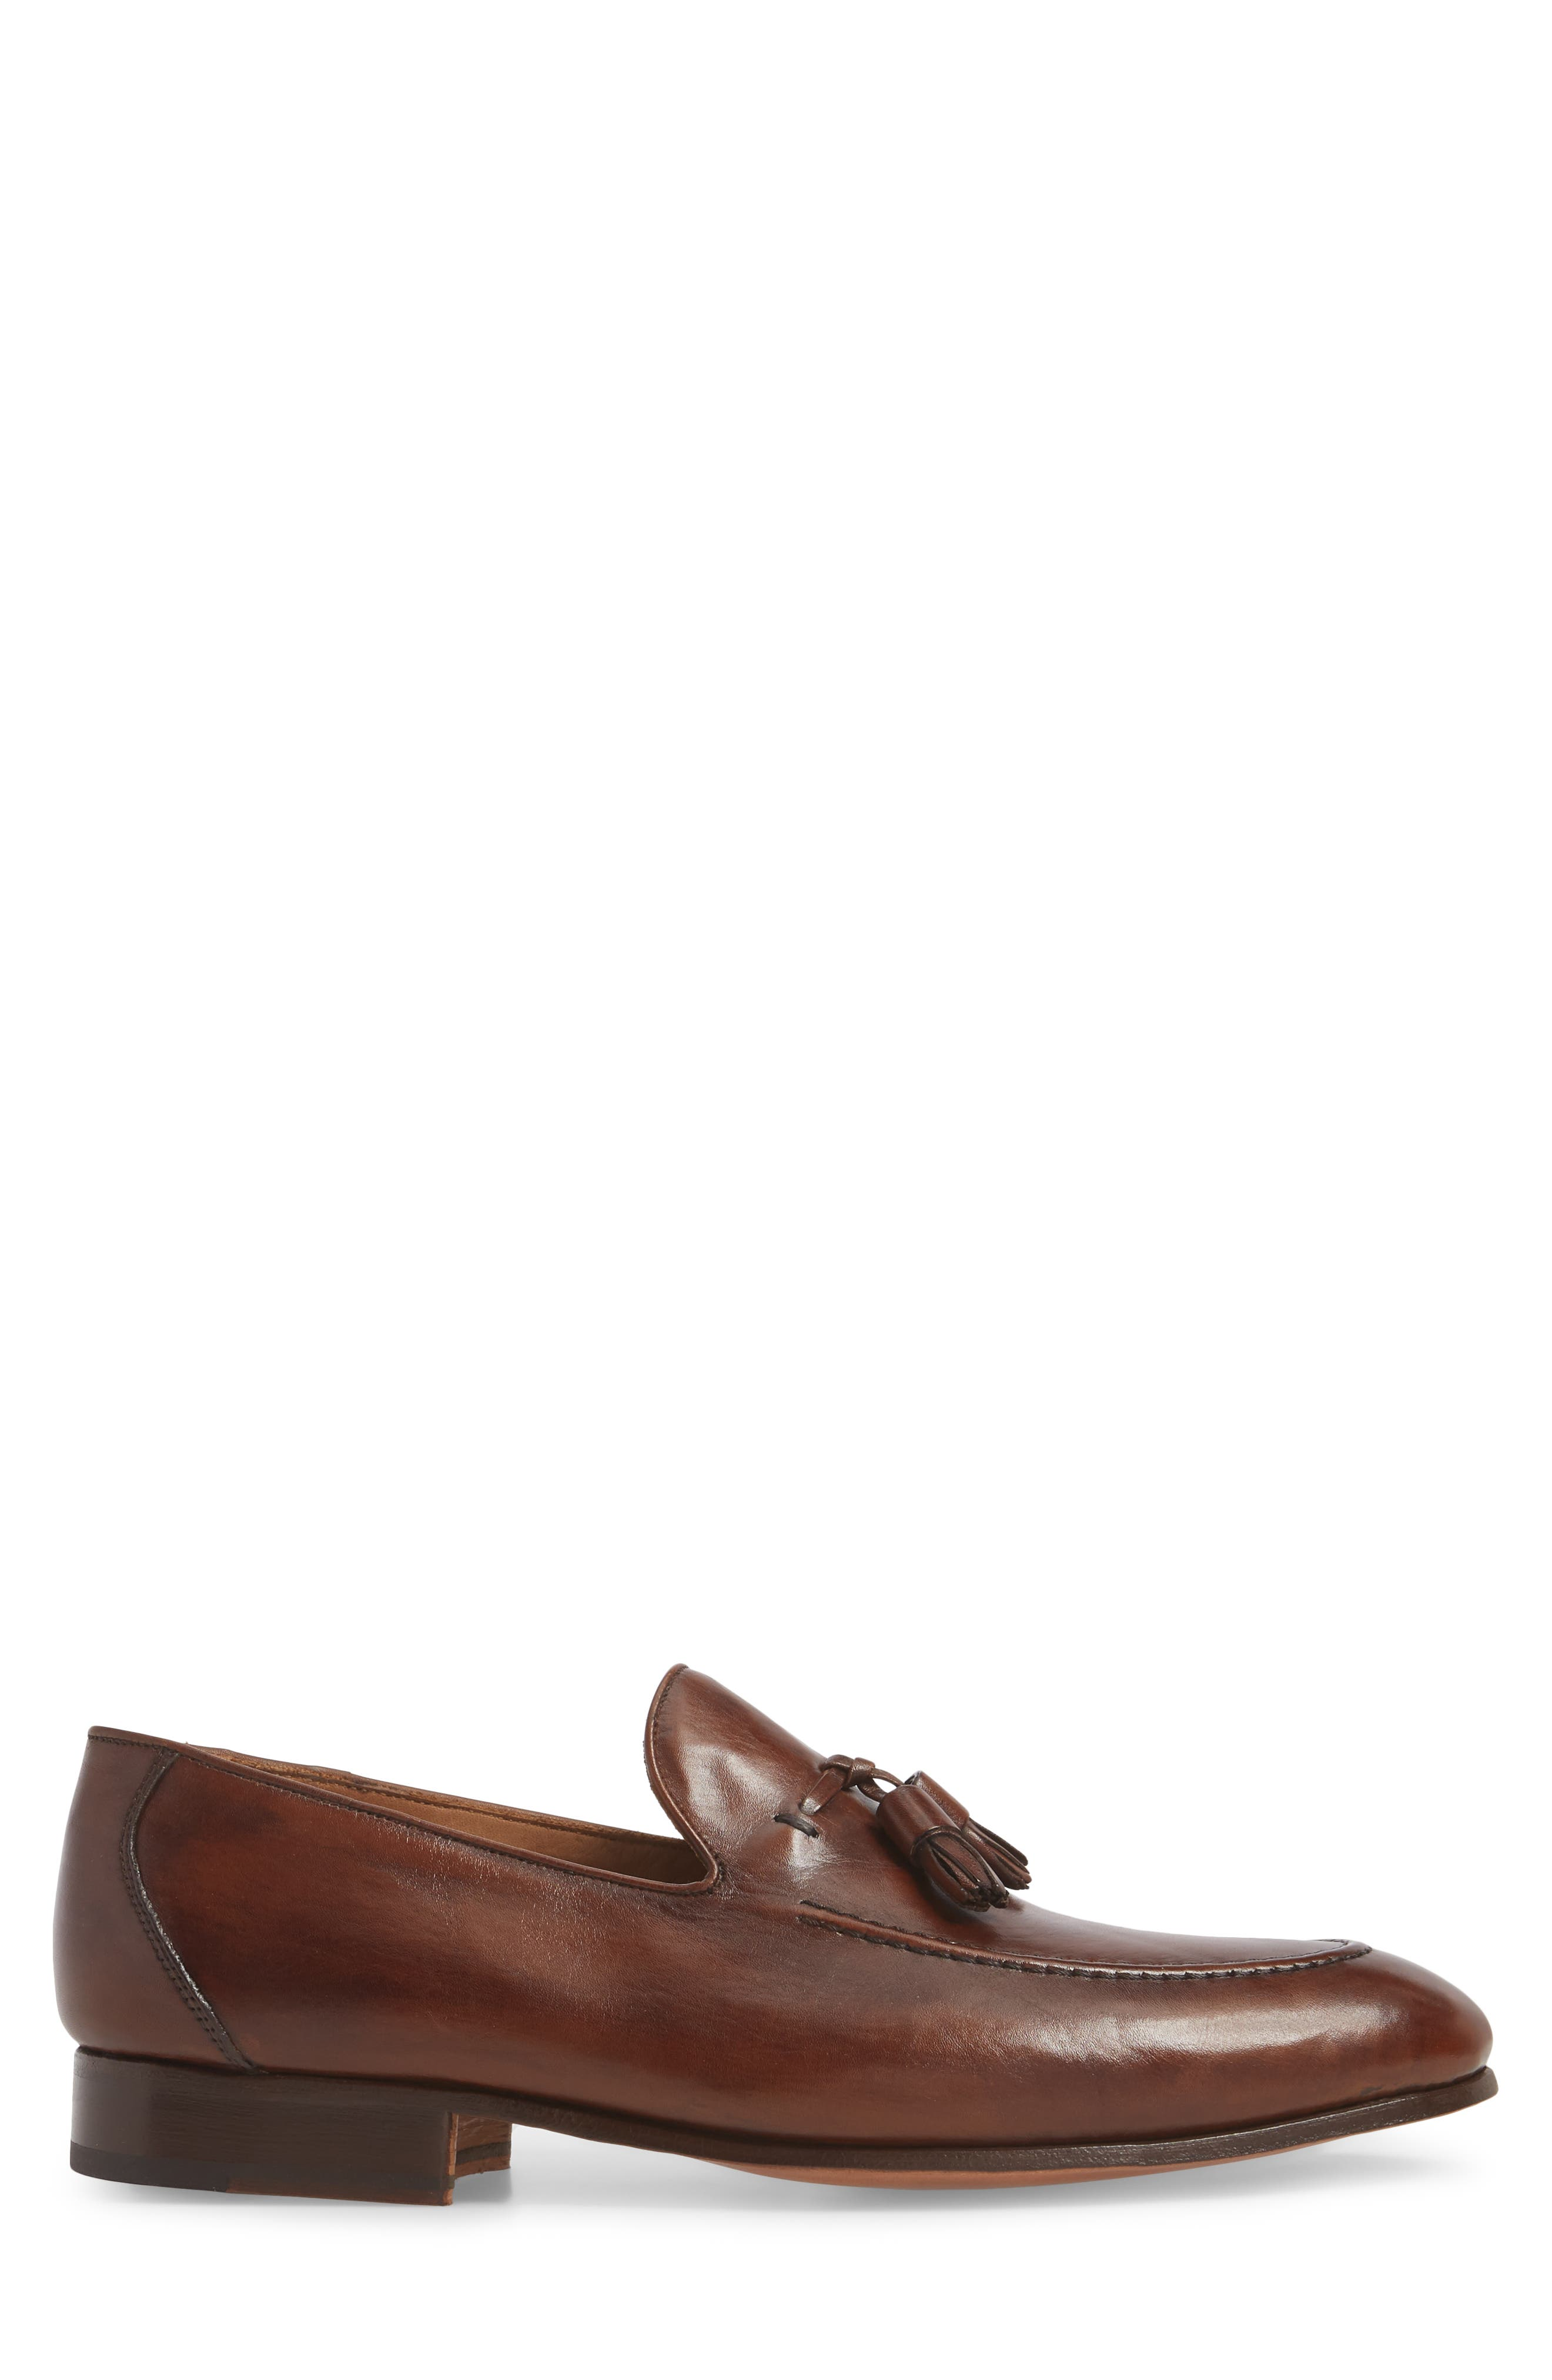 Ario Tassel Loafer,                             Alternate thumbnail 3, color,                             BROWN LEATHER